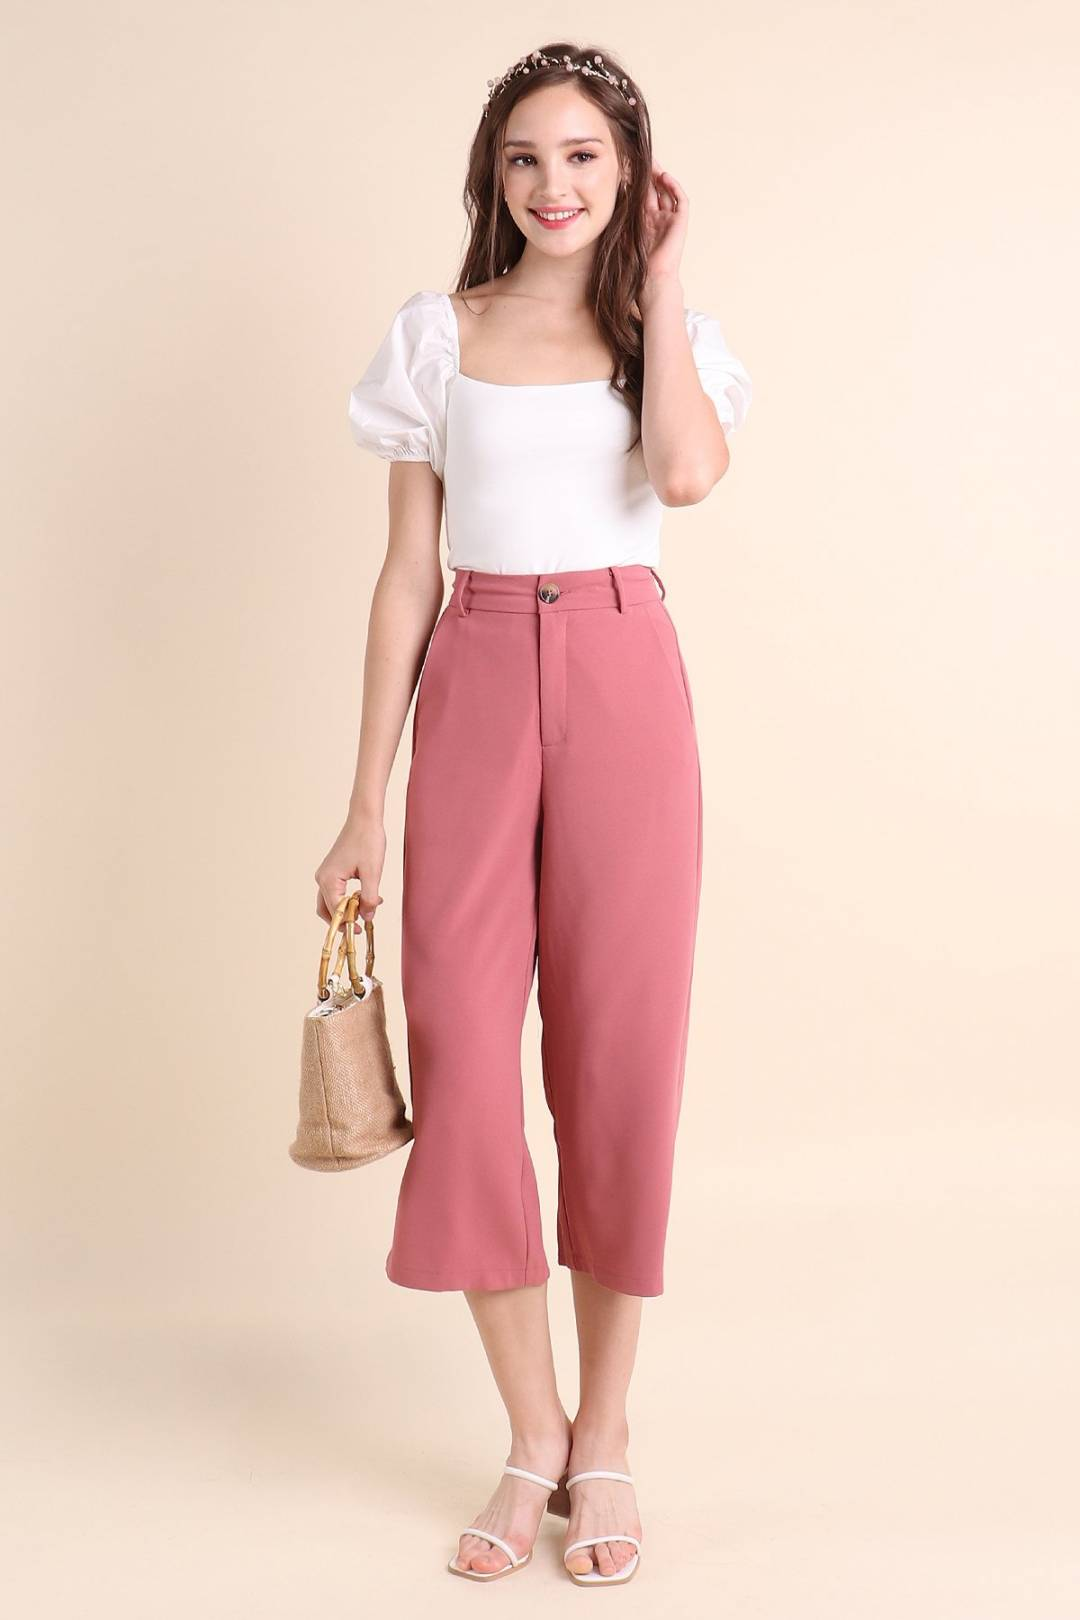 RESTOCKED** MADEBYNM CLARITY WIDE-LEG BUTTONED CULOTTES IN ROSE MELON [XS/S/M/L/XL]